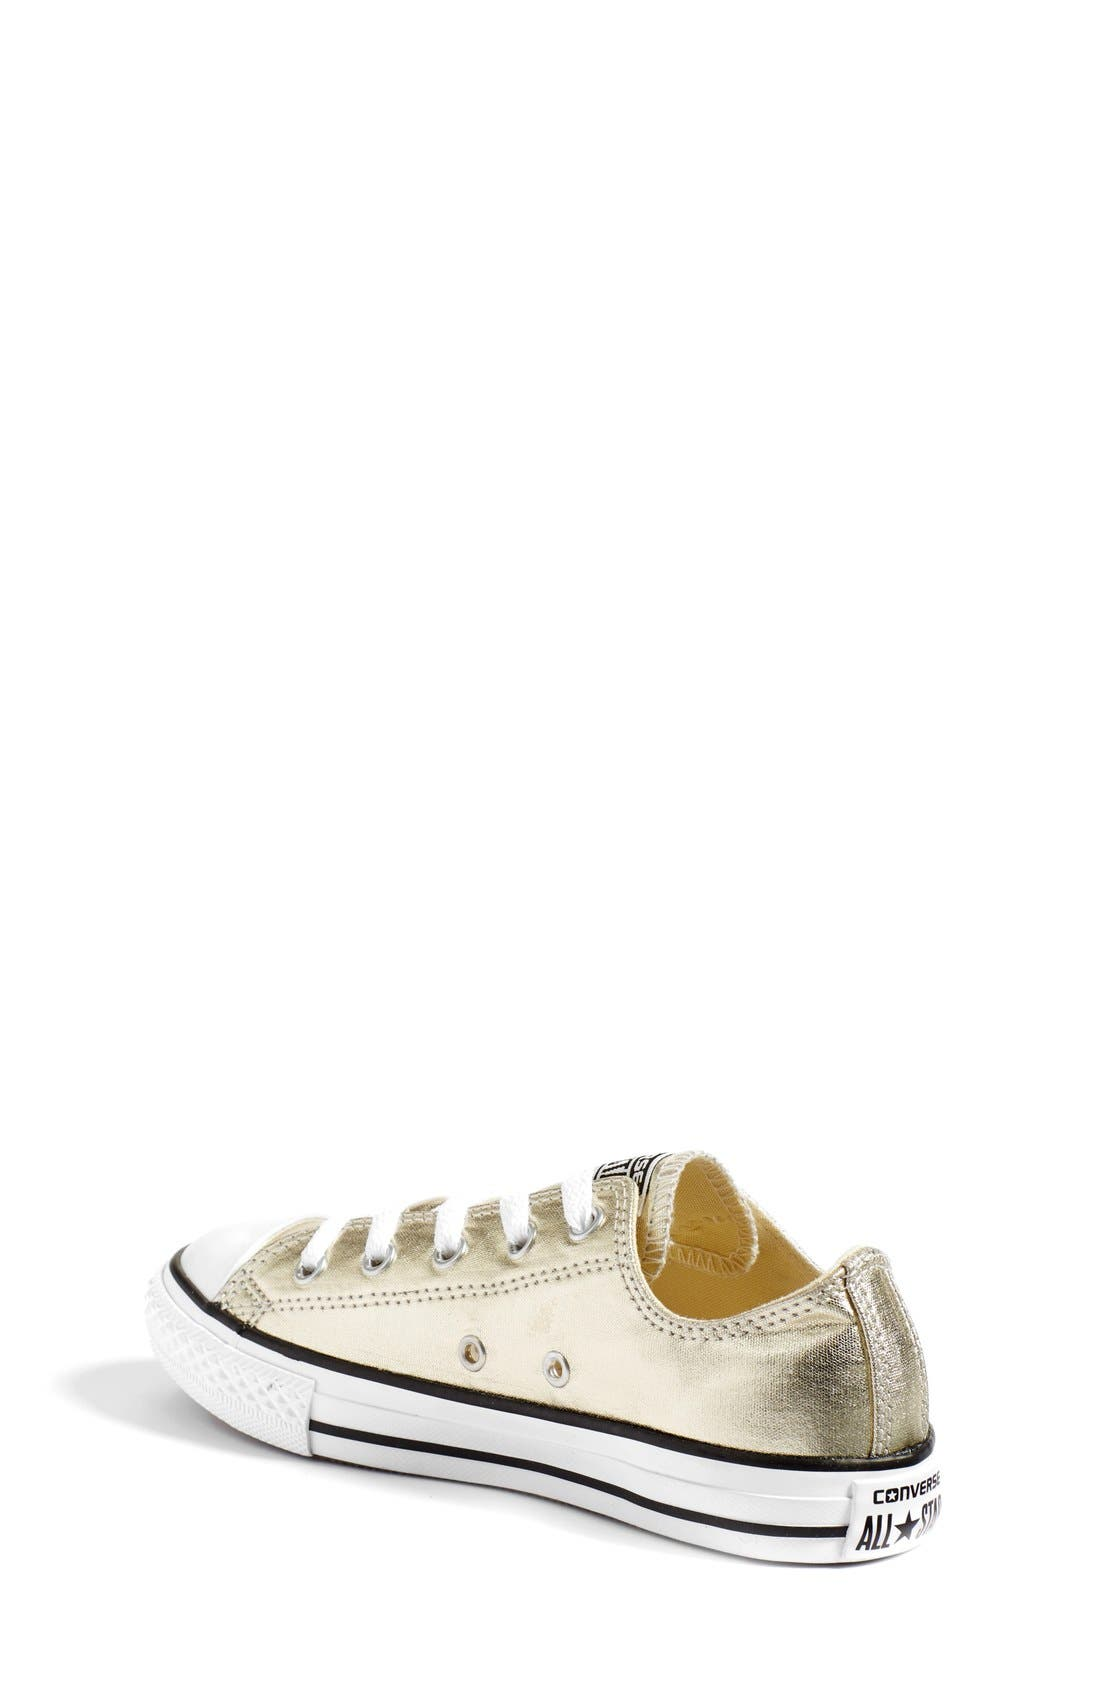 Chuck Taylor<sup>®</sup> All Star<sup>®</sup> Metallic Sneaker,                             Alternate thumbnail 2, color,                             LIGHT GOLD/ WHITE